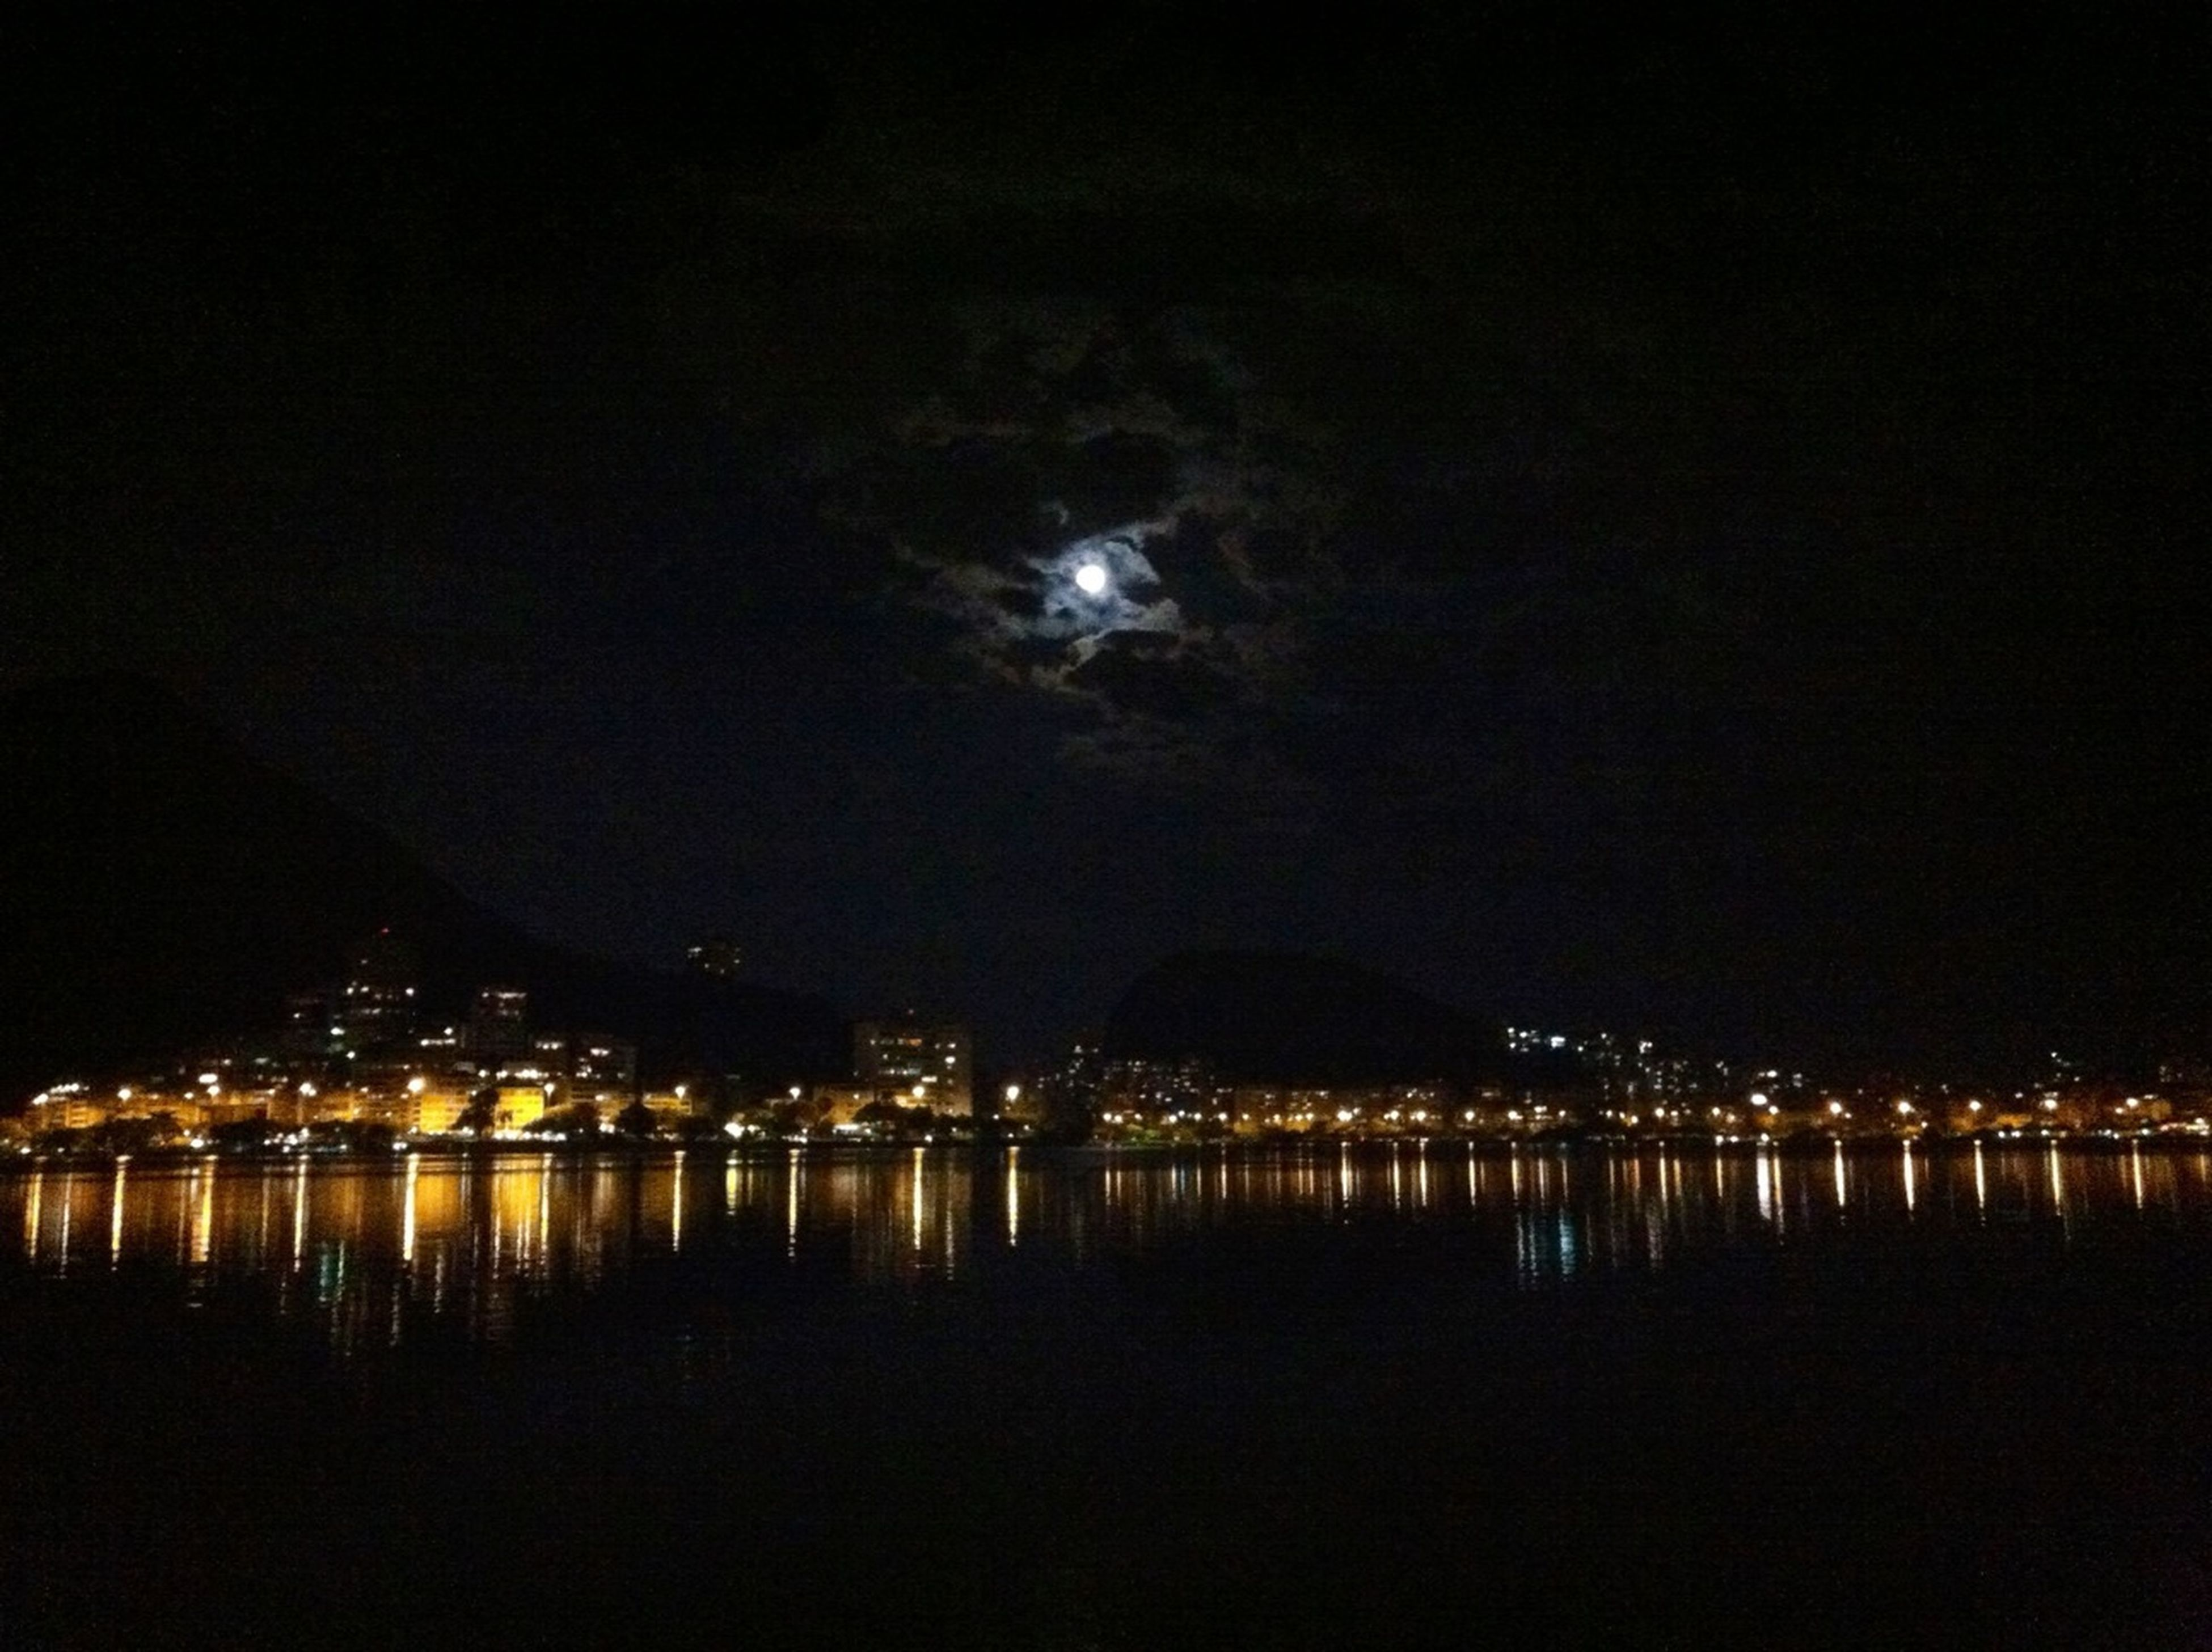 night, illuminated, water, waterfront, reflection, sky, sea, river, tranquil scene, tranquility, scenics, lake, built structure, architecture, light, nature, dark, beauty in nature, outdoors, lighting equipment